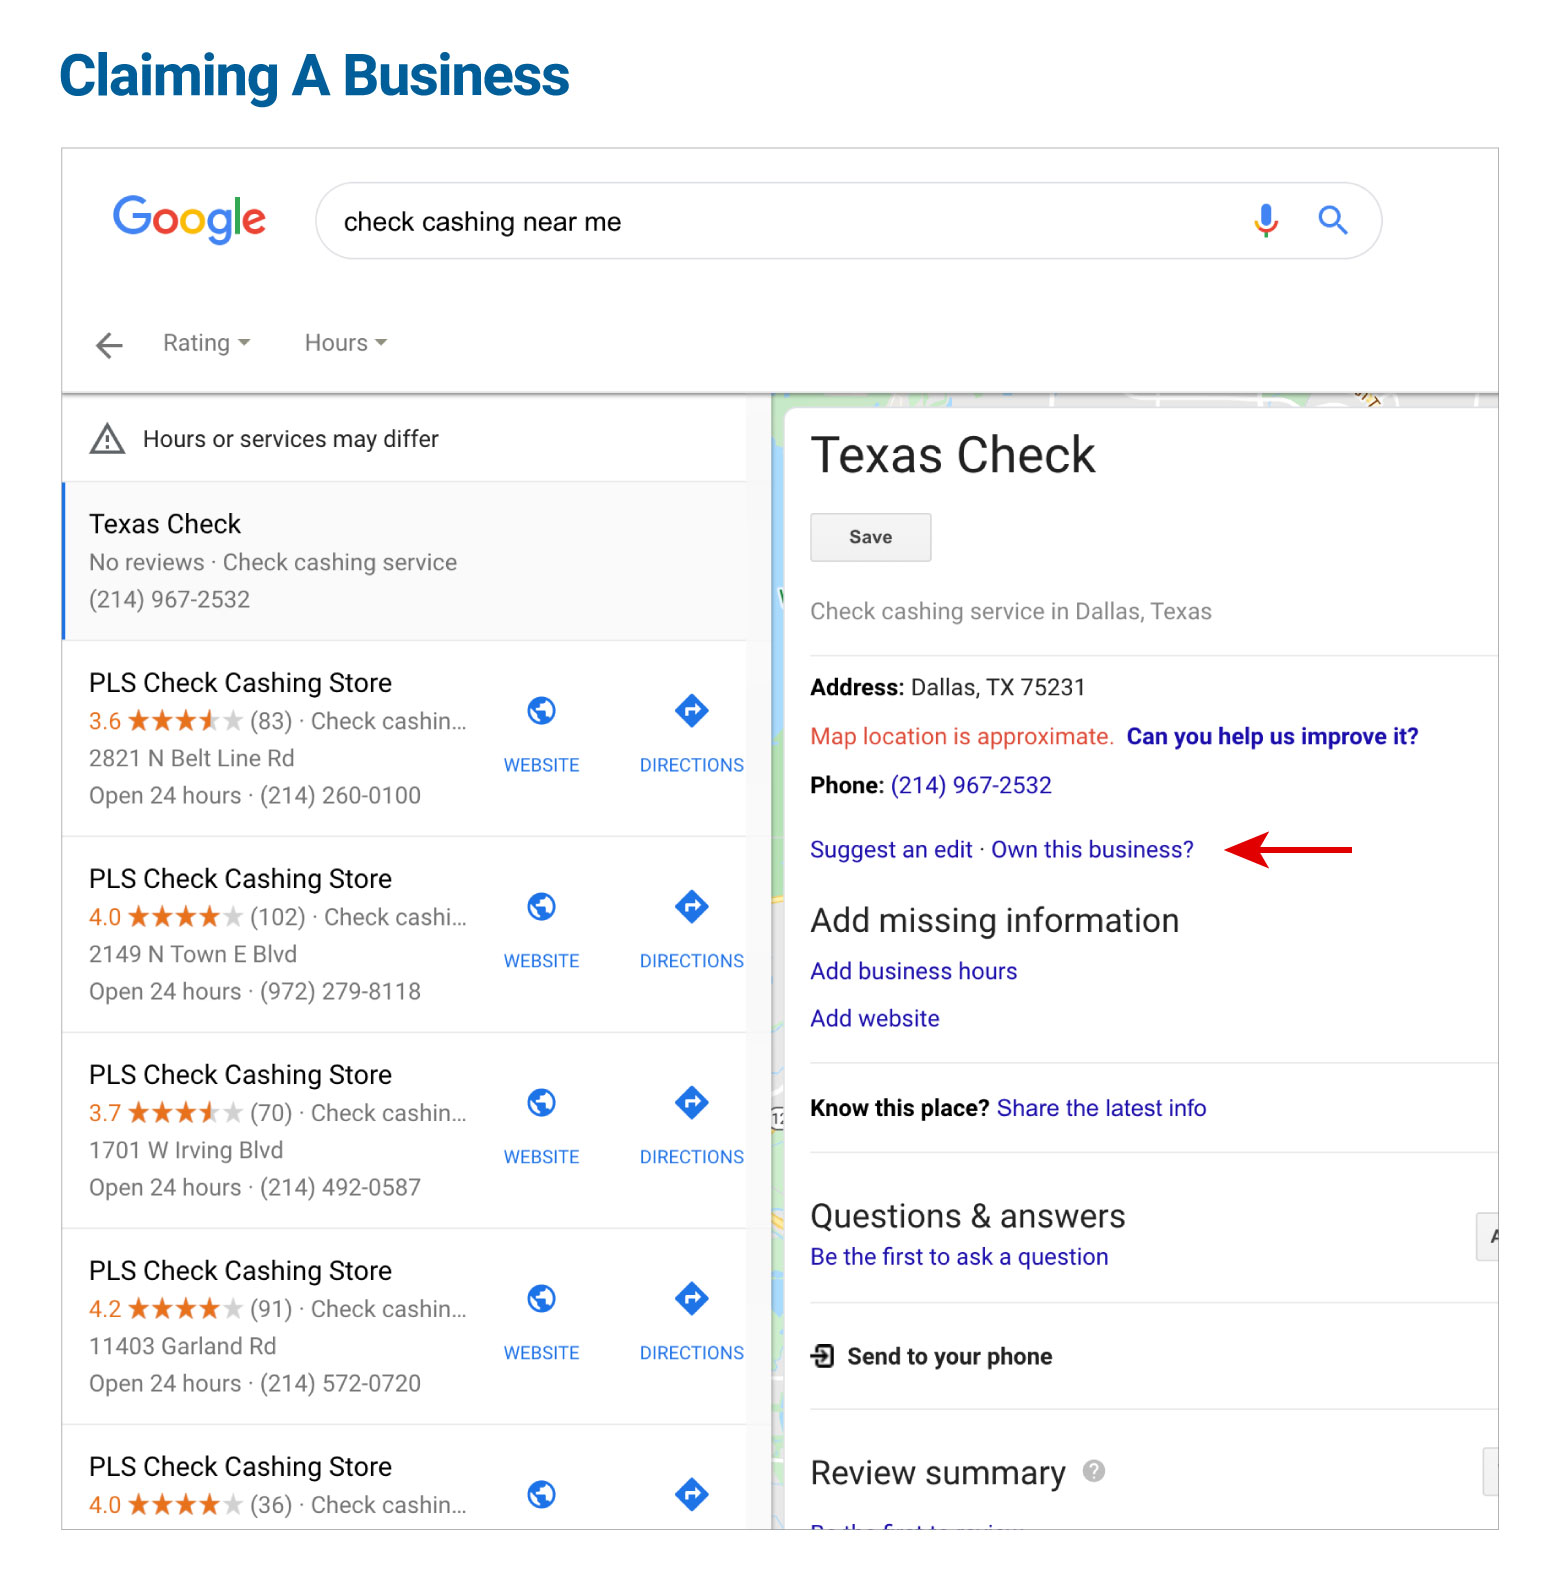 Claiming A Business